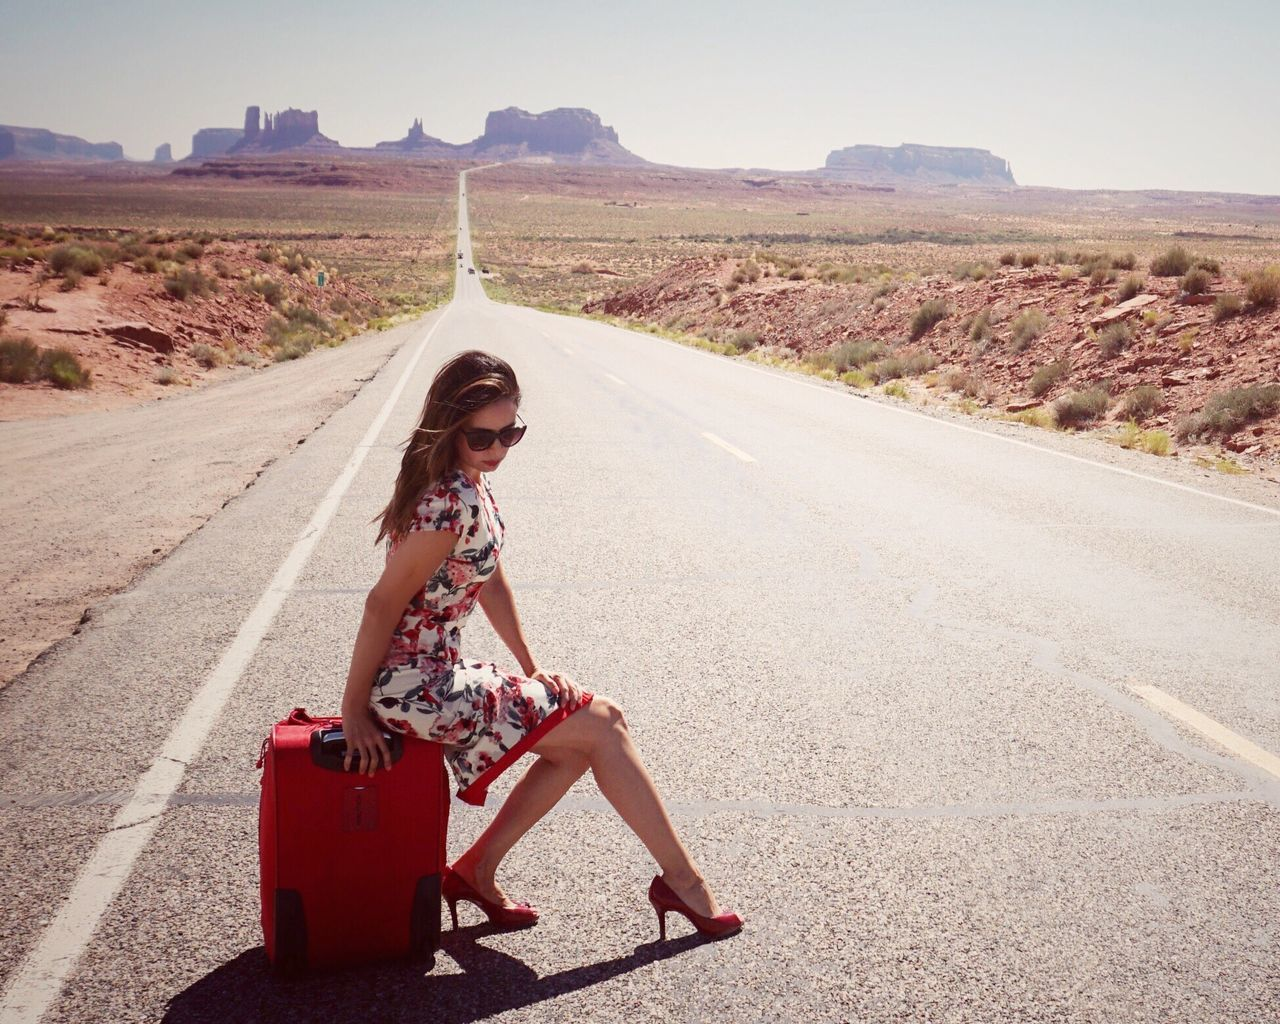 Summertime Sadness 🎧 Shootermag_usa Summertime Wild West Roadtrip Portrait Of A Woman Editorial  Editorial Fashion Vintage Style Vintage Fashion Forest Gump Roadside Road Utah Southwest  Fashion Style ✌ Style Hidden Gems  People And Places Women Around The World The Great Outdoors - 2017 EyeEm Awards